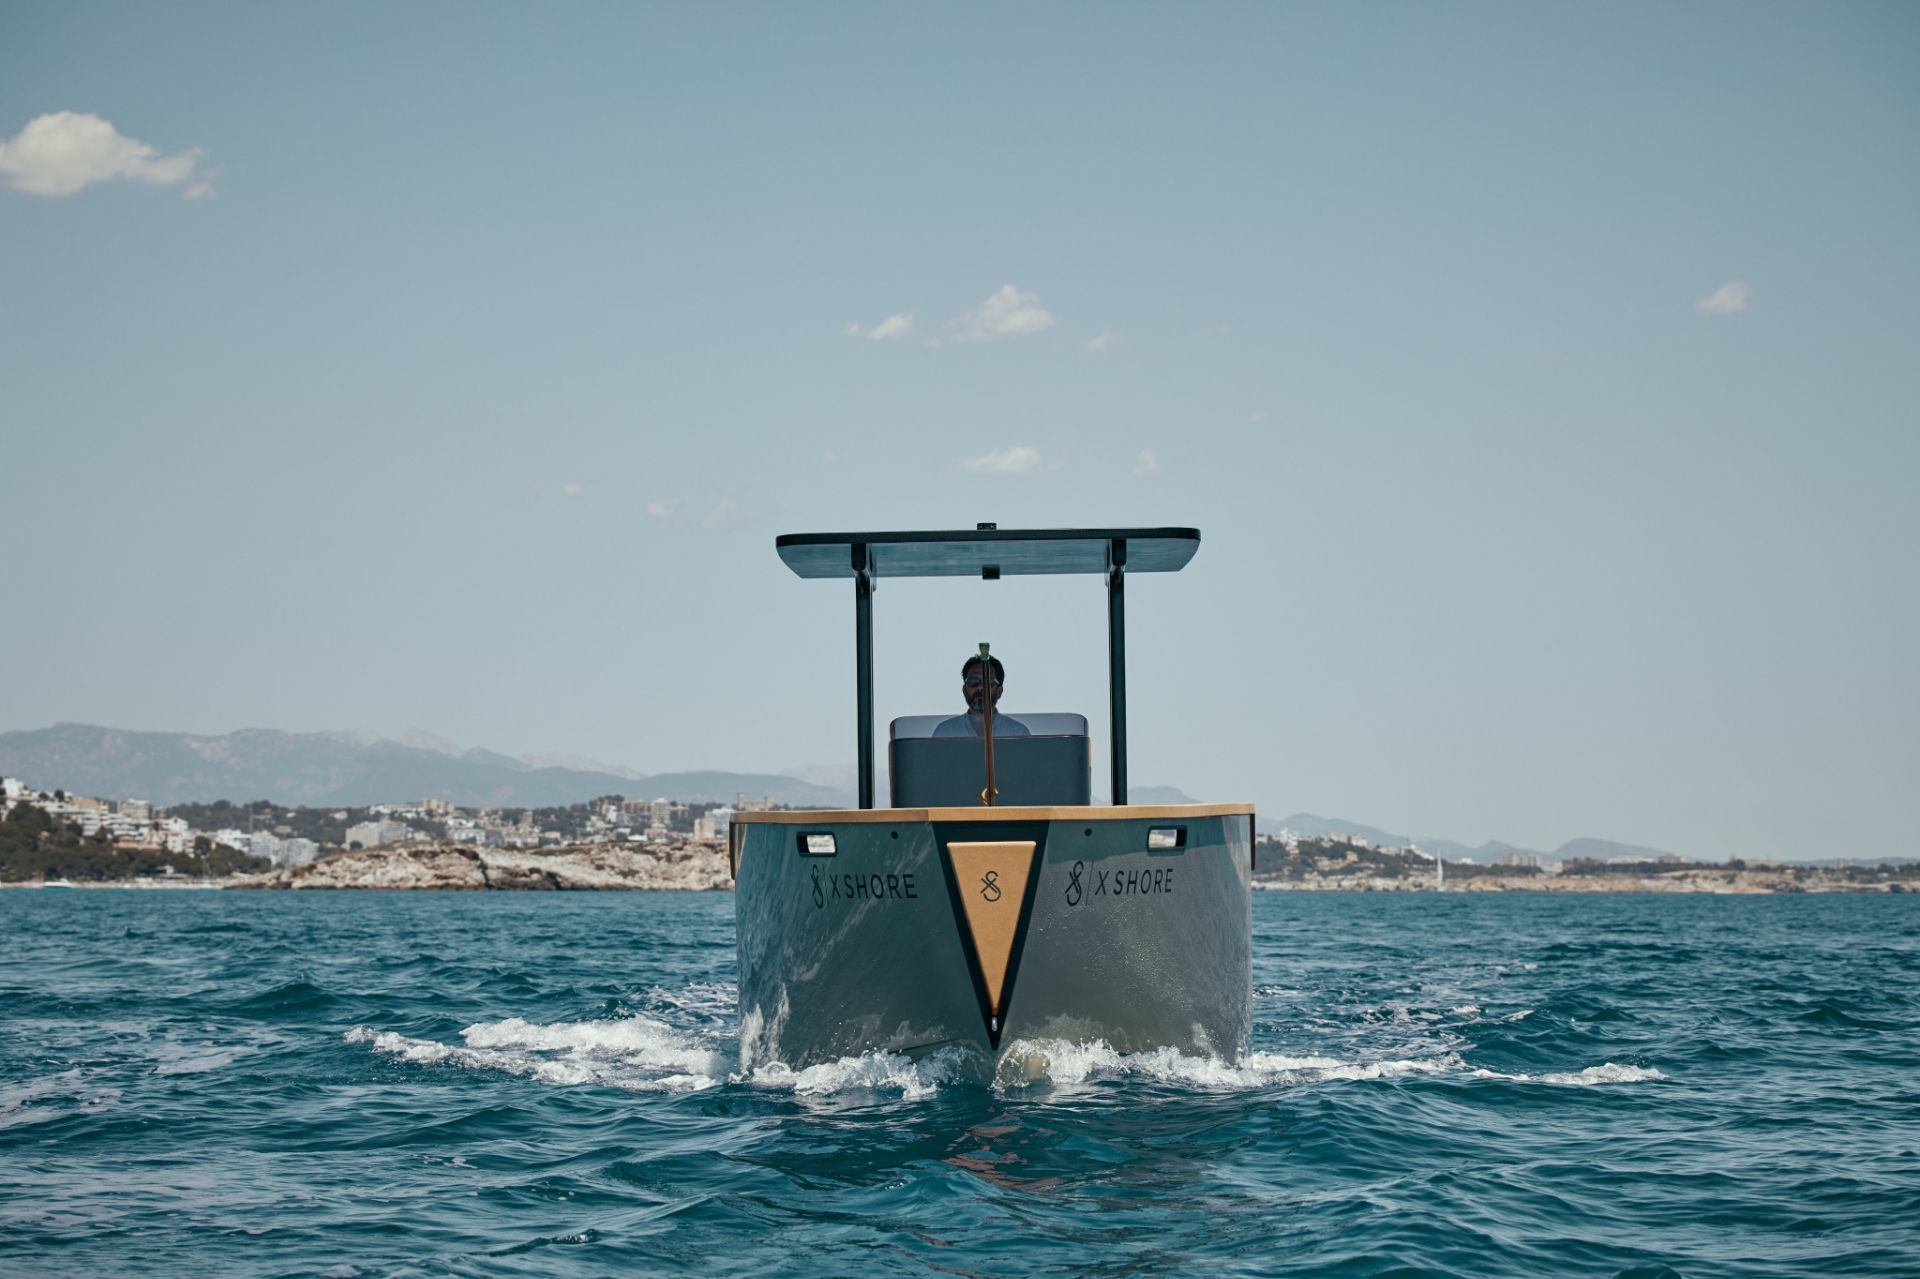 x shore electric boat yacht